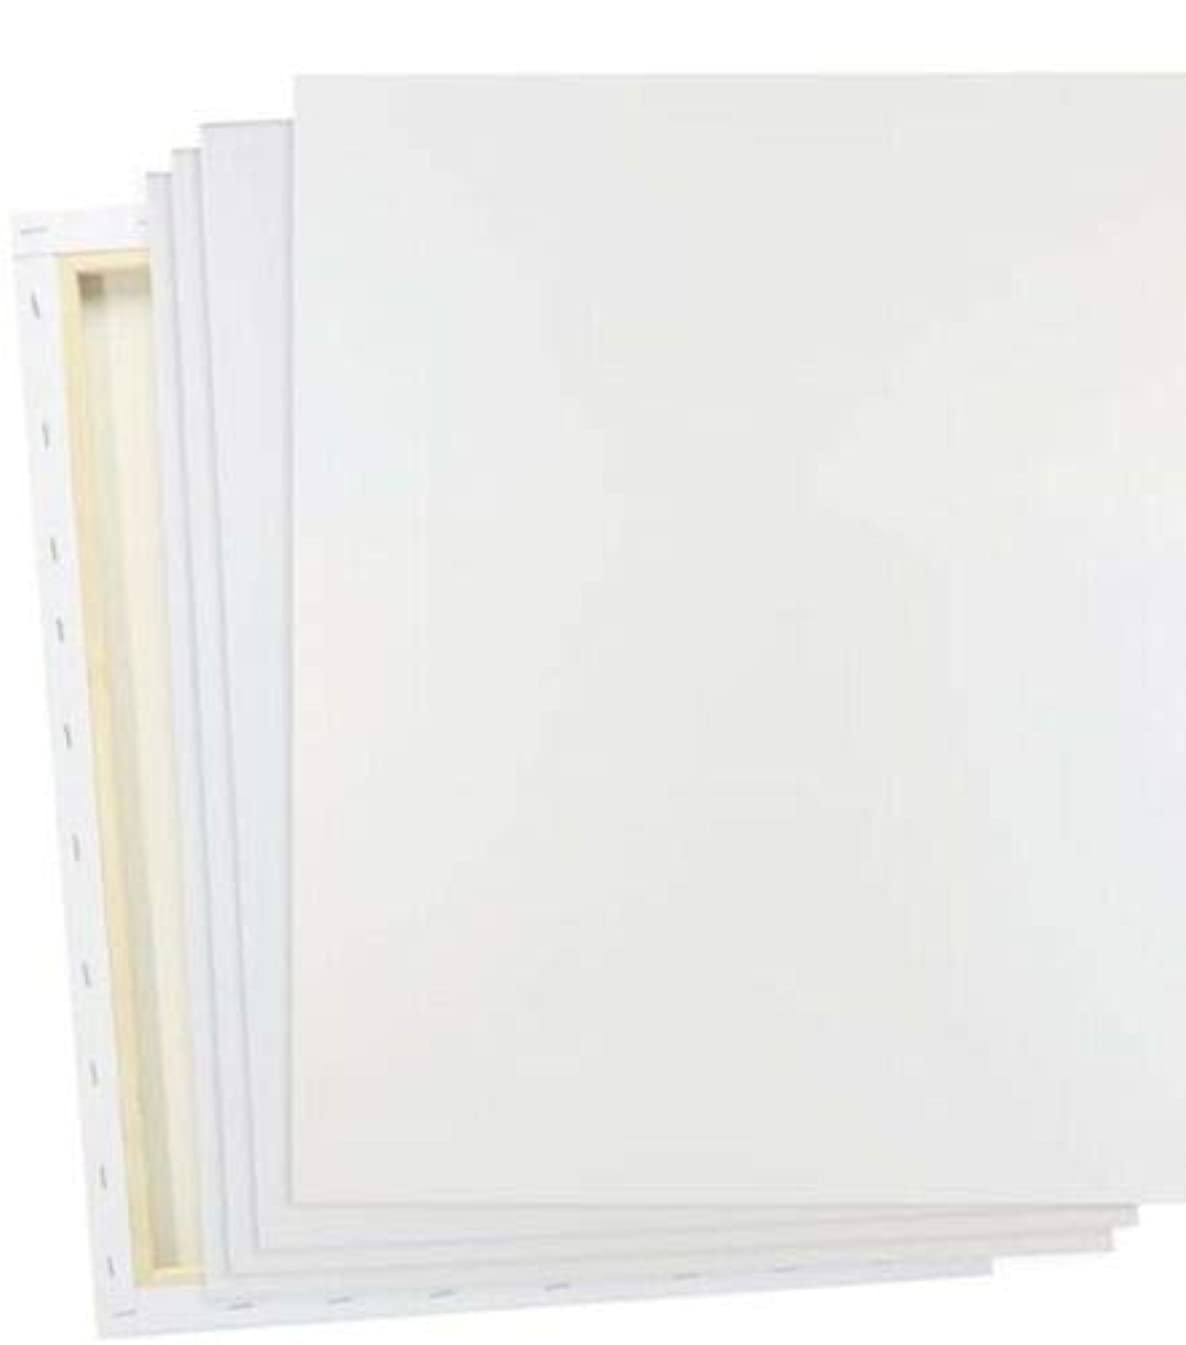 "PAINTS & PRINTS 16x20"" Stretched White Blank Canvas, Pack of 5, Primed, 100% Cotton, Acrylic Pouring, Oil Paint & Wet Art Media, Canvases for Professional Artist, Hobby Painters (Class - 5 Pack)"